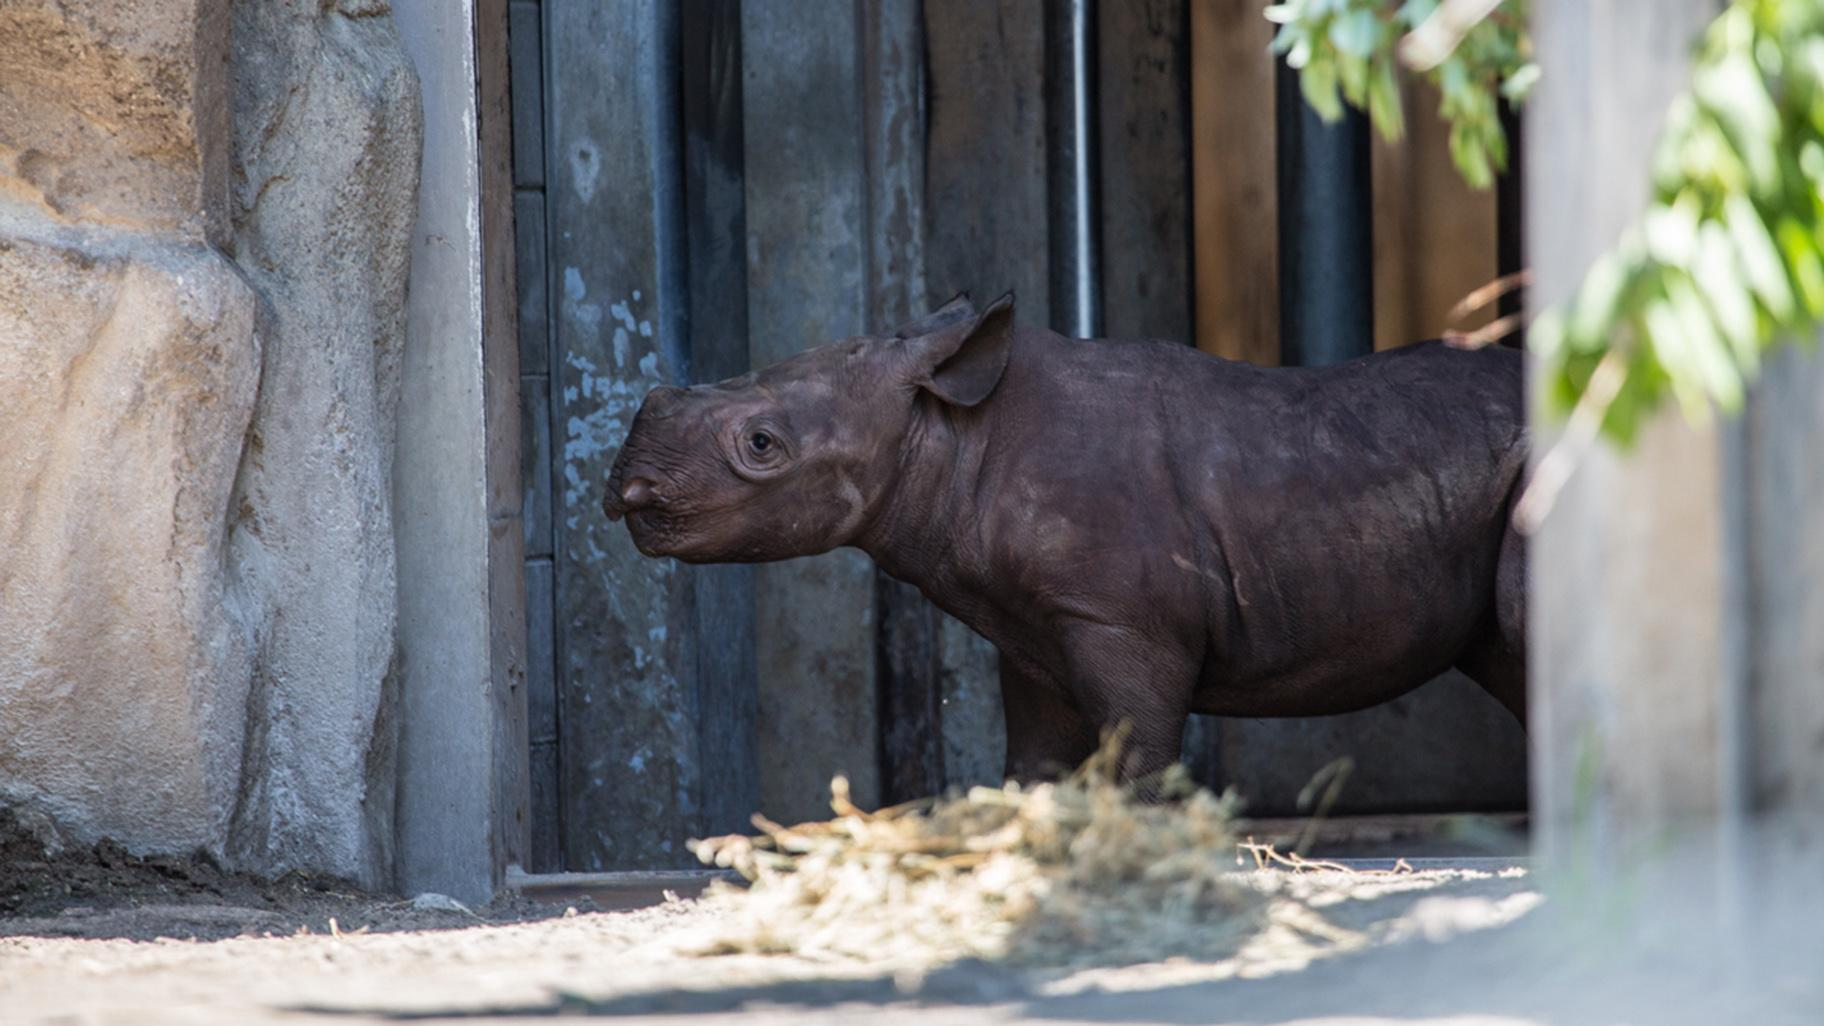 A yet-to-be-named black rhino calf debuted June 19 at Lincoln Park Zoo. (Christopher Bijalba / Lincoln Park Zoo)